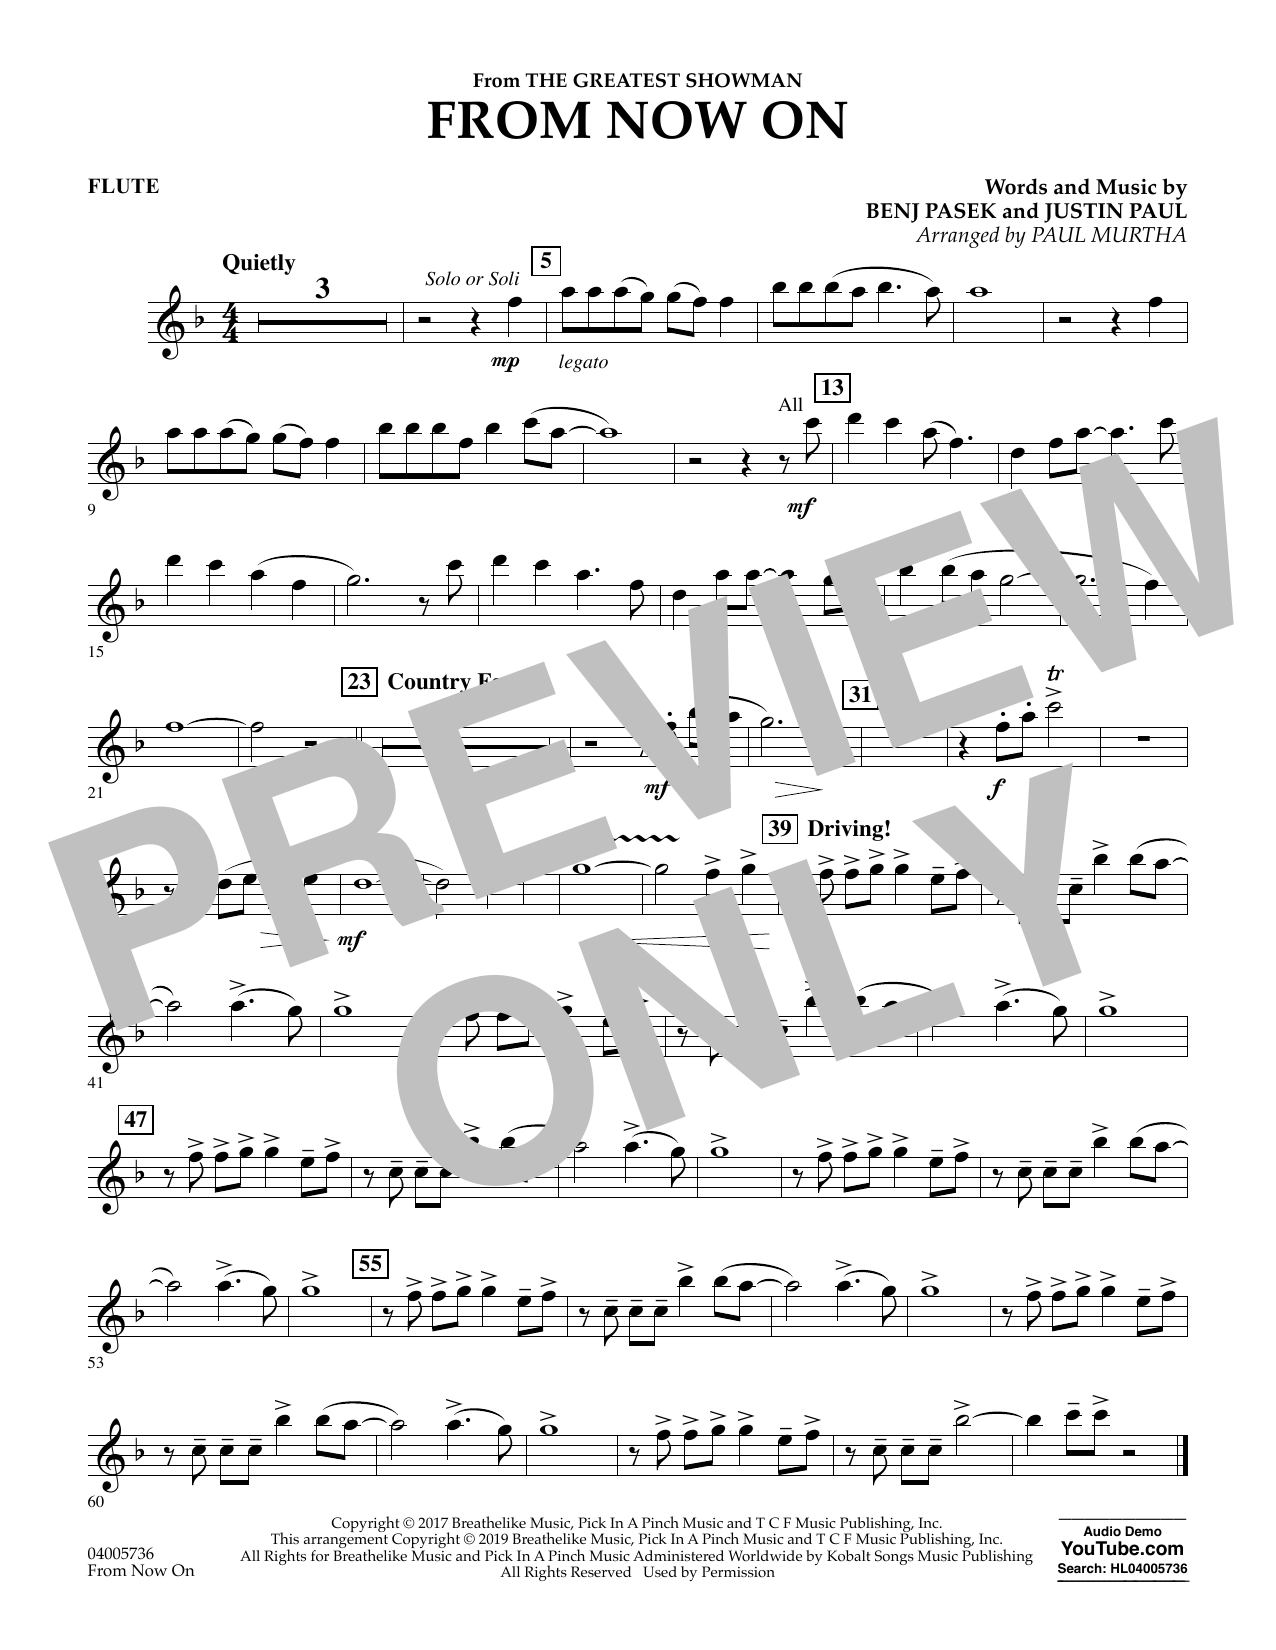 From Now On (from The Greatest Showman) (arr. Paul Murtha) - Flute (Concert Band)